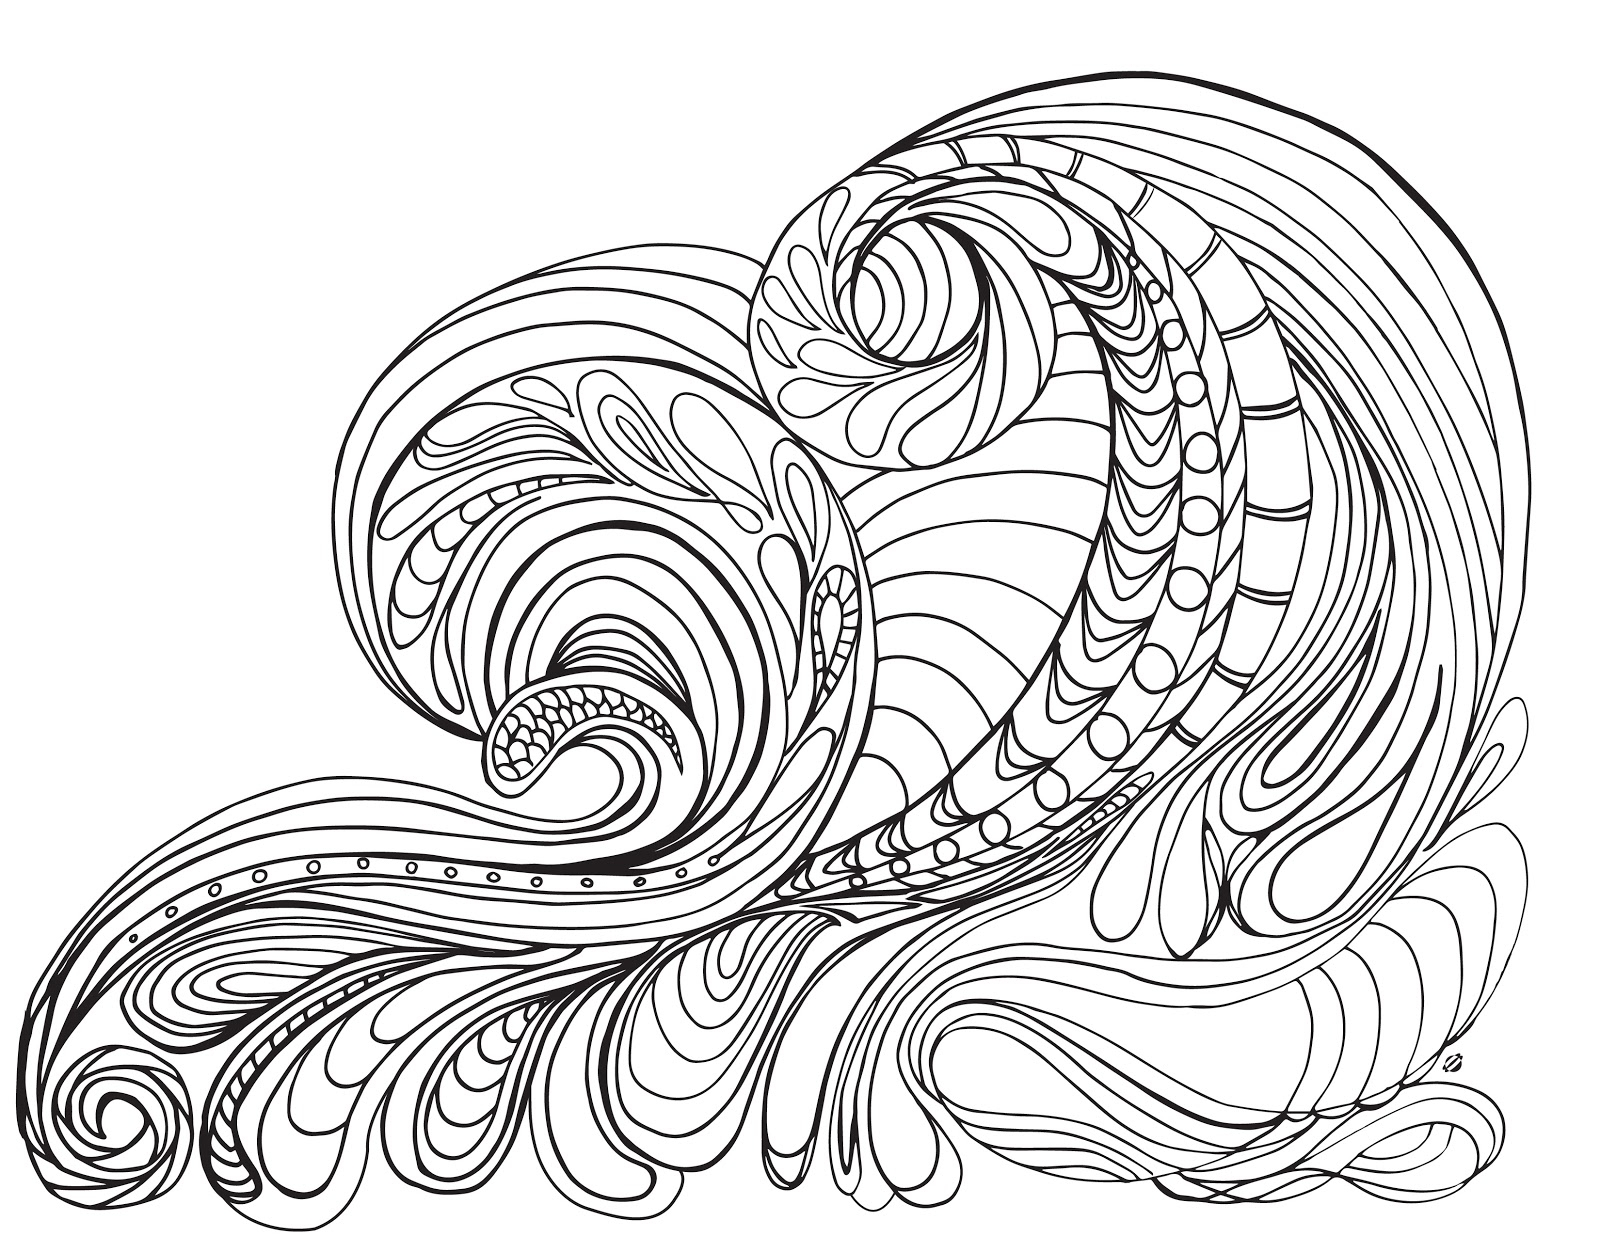 The Best Free Wave Coloring Page Images Download From 60 Free